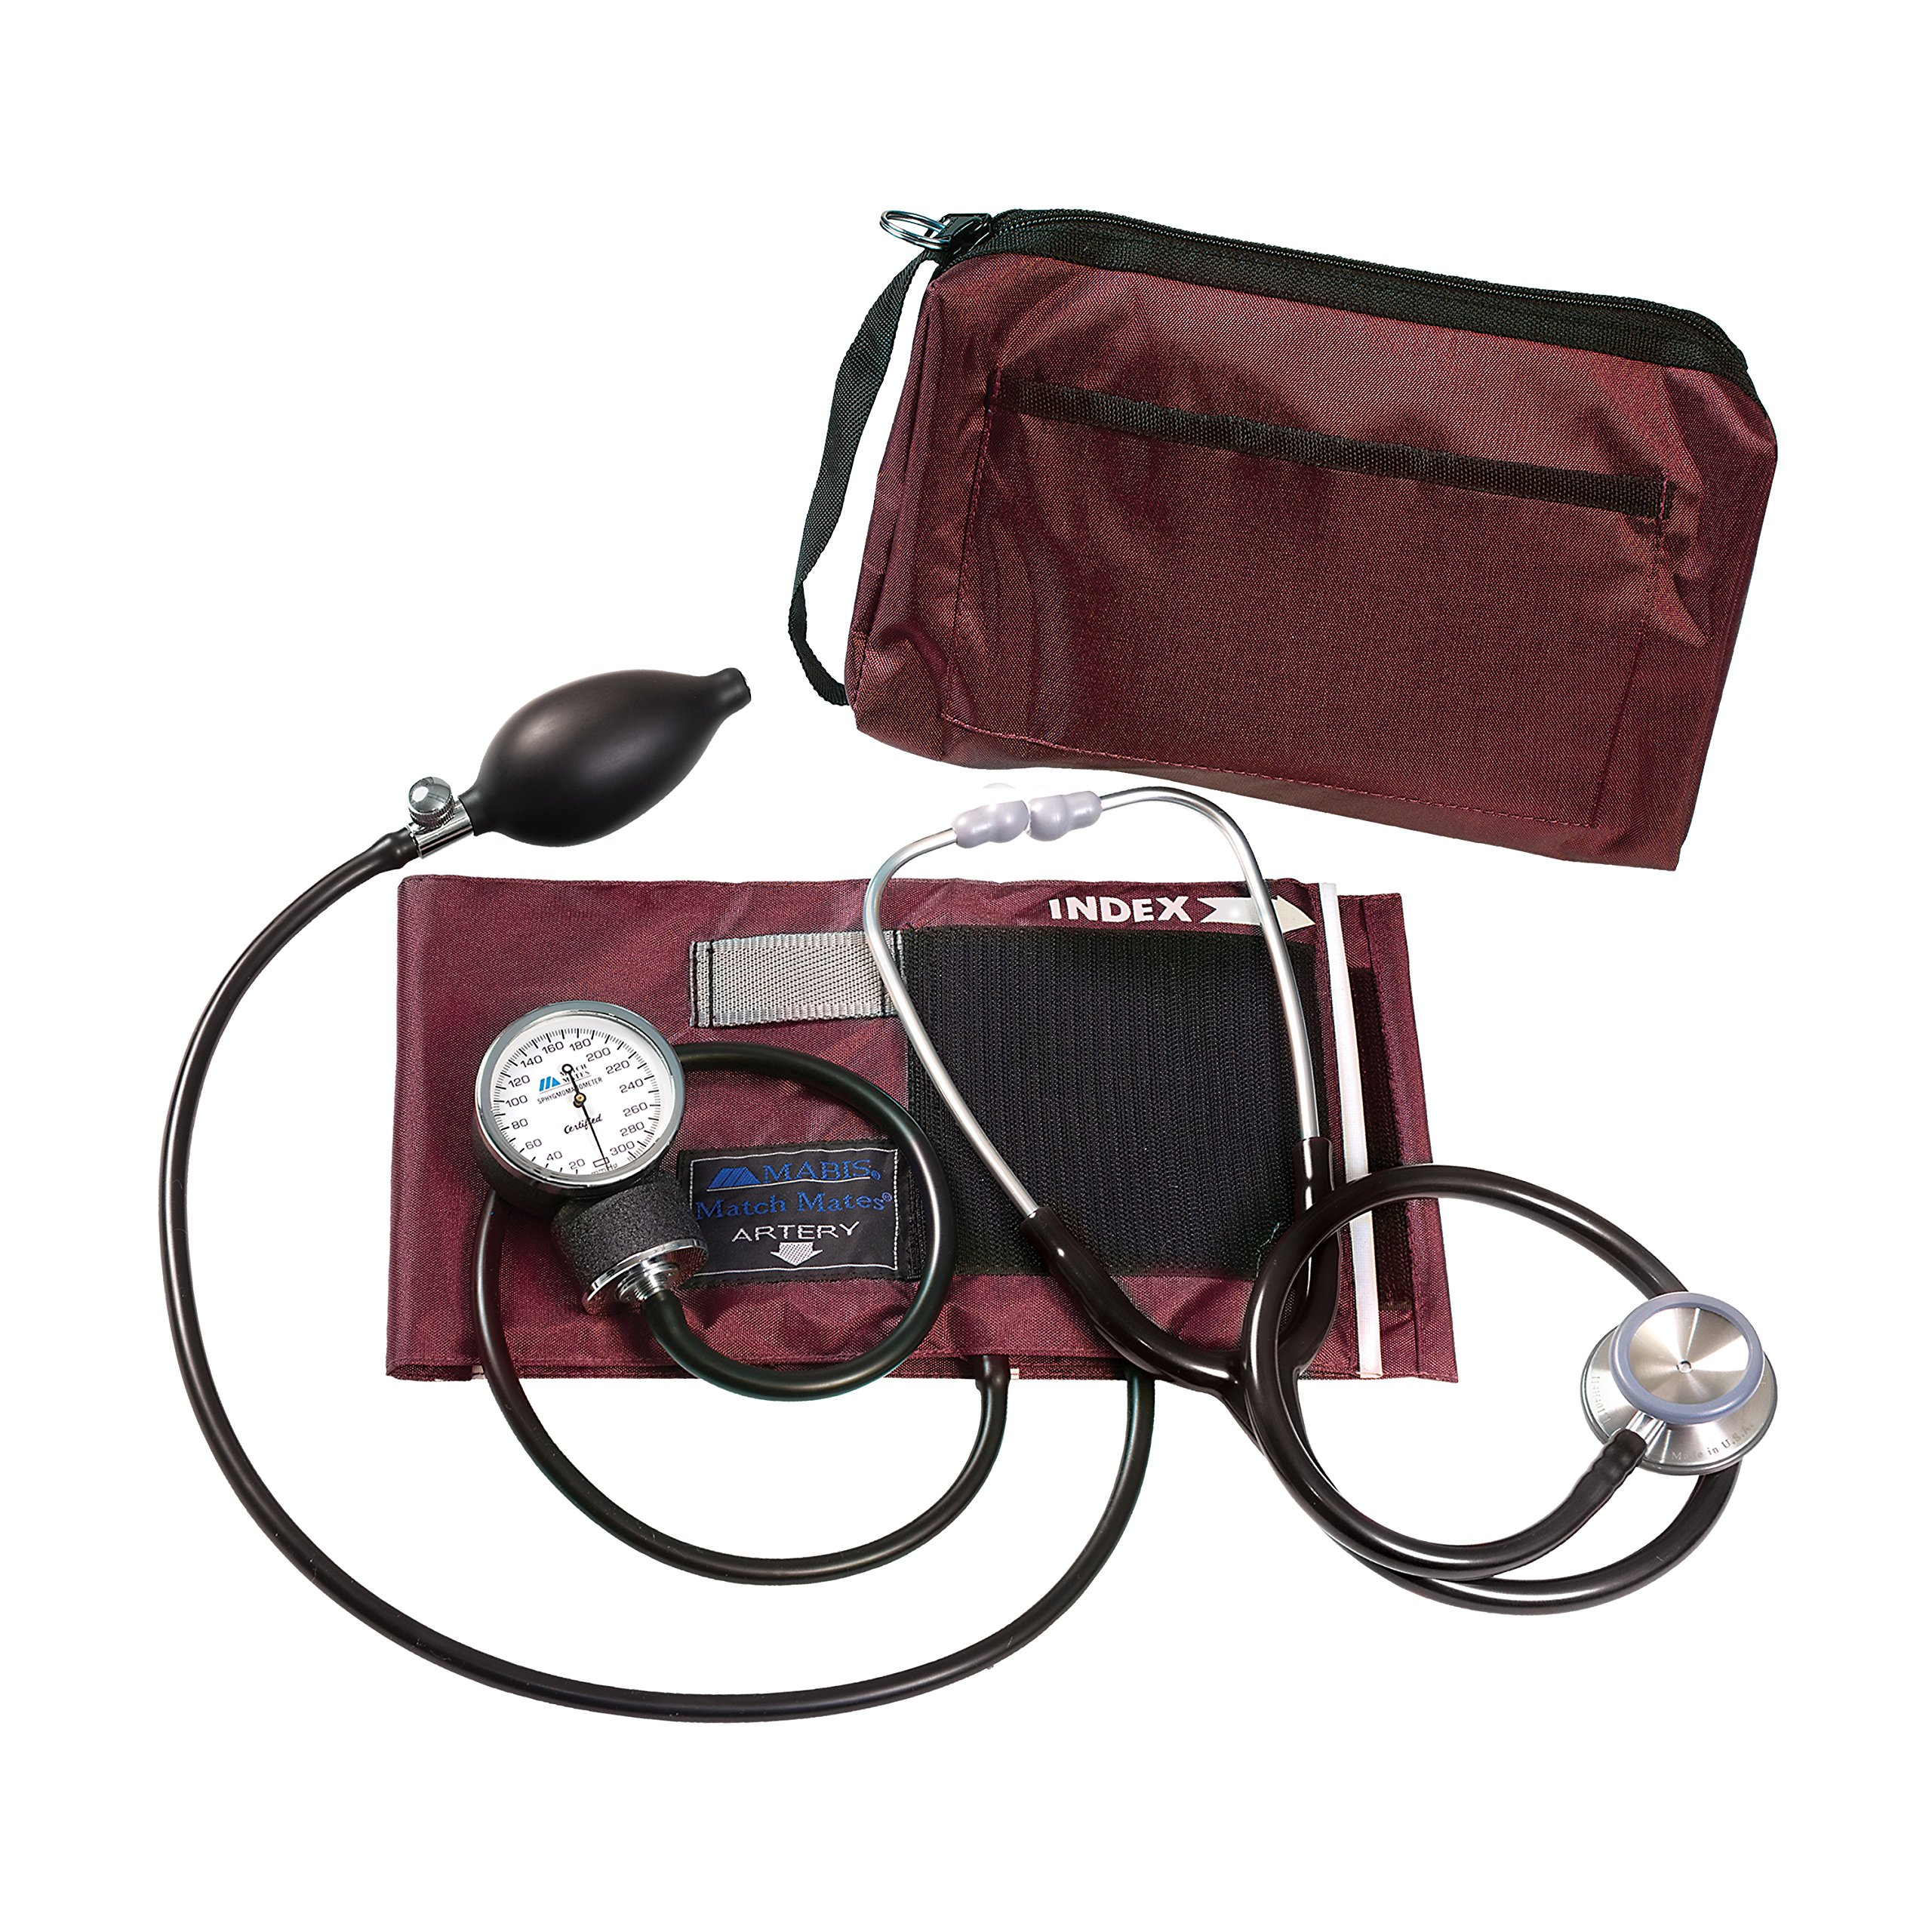 MatchMates Combination Kit with a 3M Littmann Classic II S.E. Stethoscope and a MABIS Aneroid Sphygmomanometer, Burgundy and Black